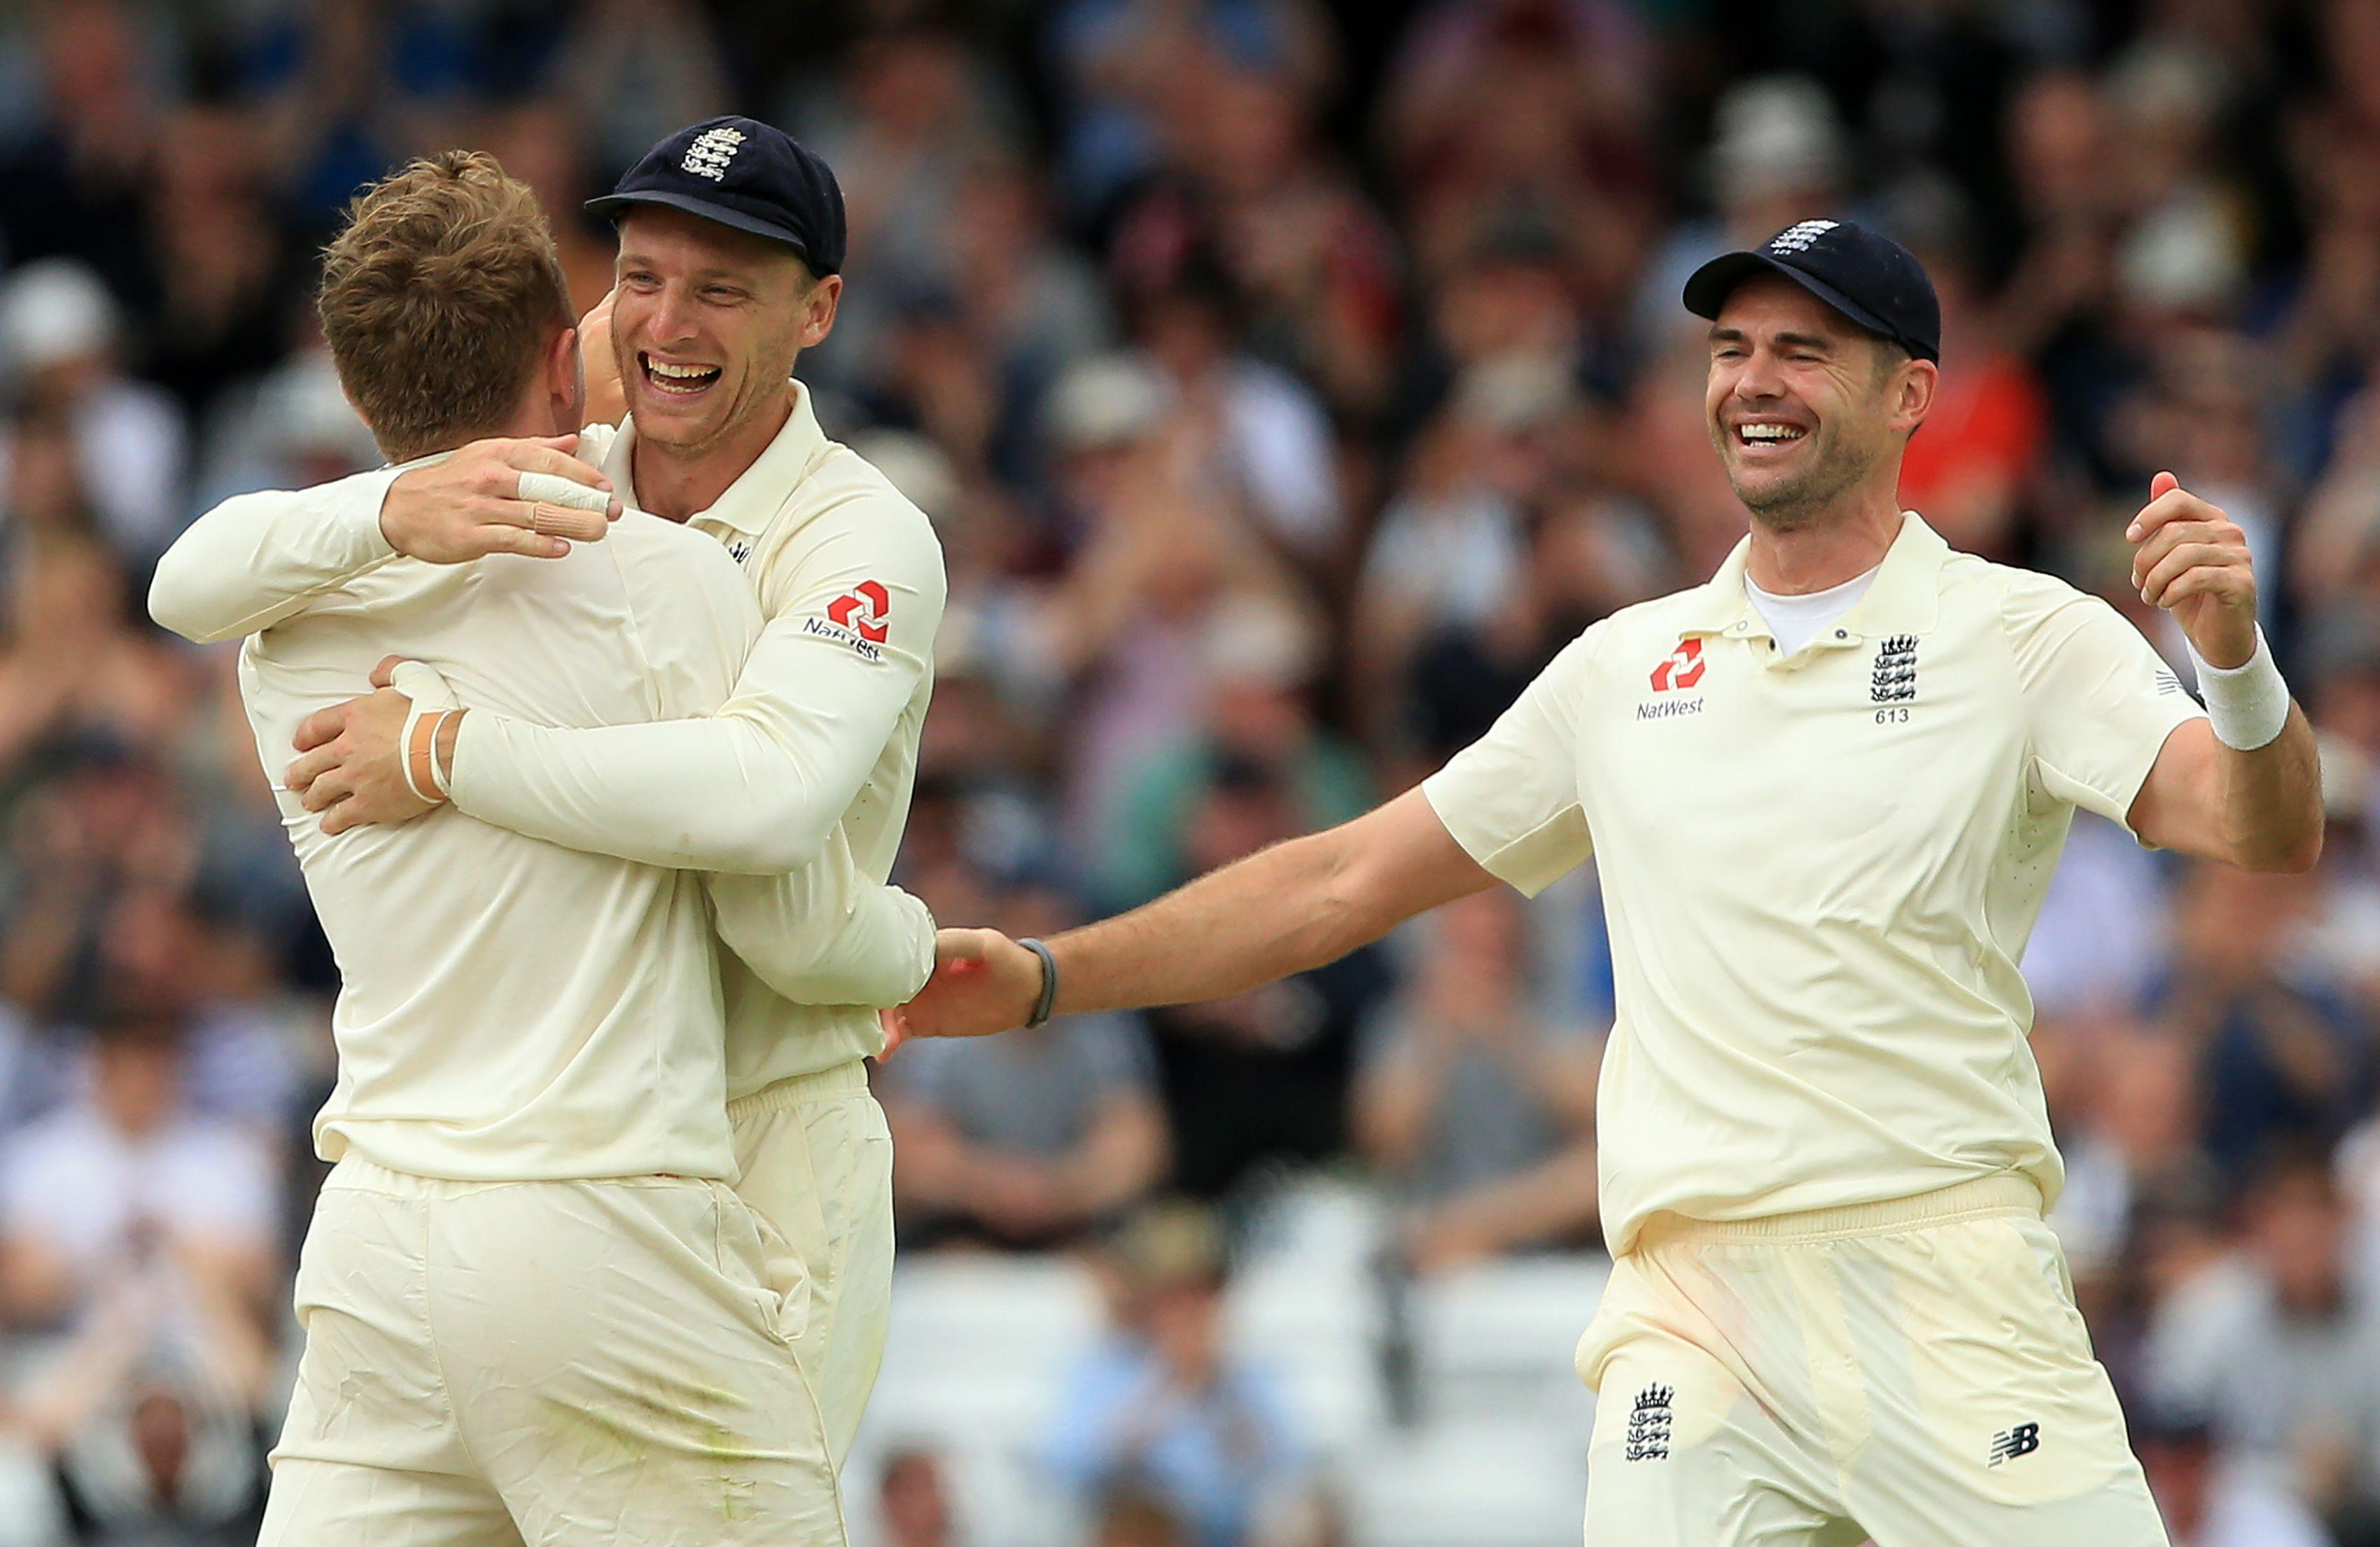 England are closing in on victory against Pakistan in the second Test